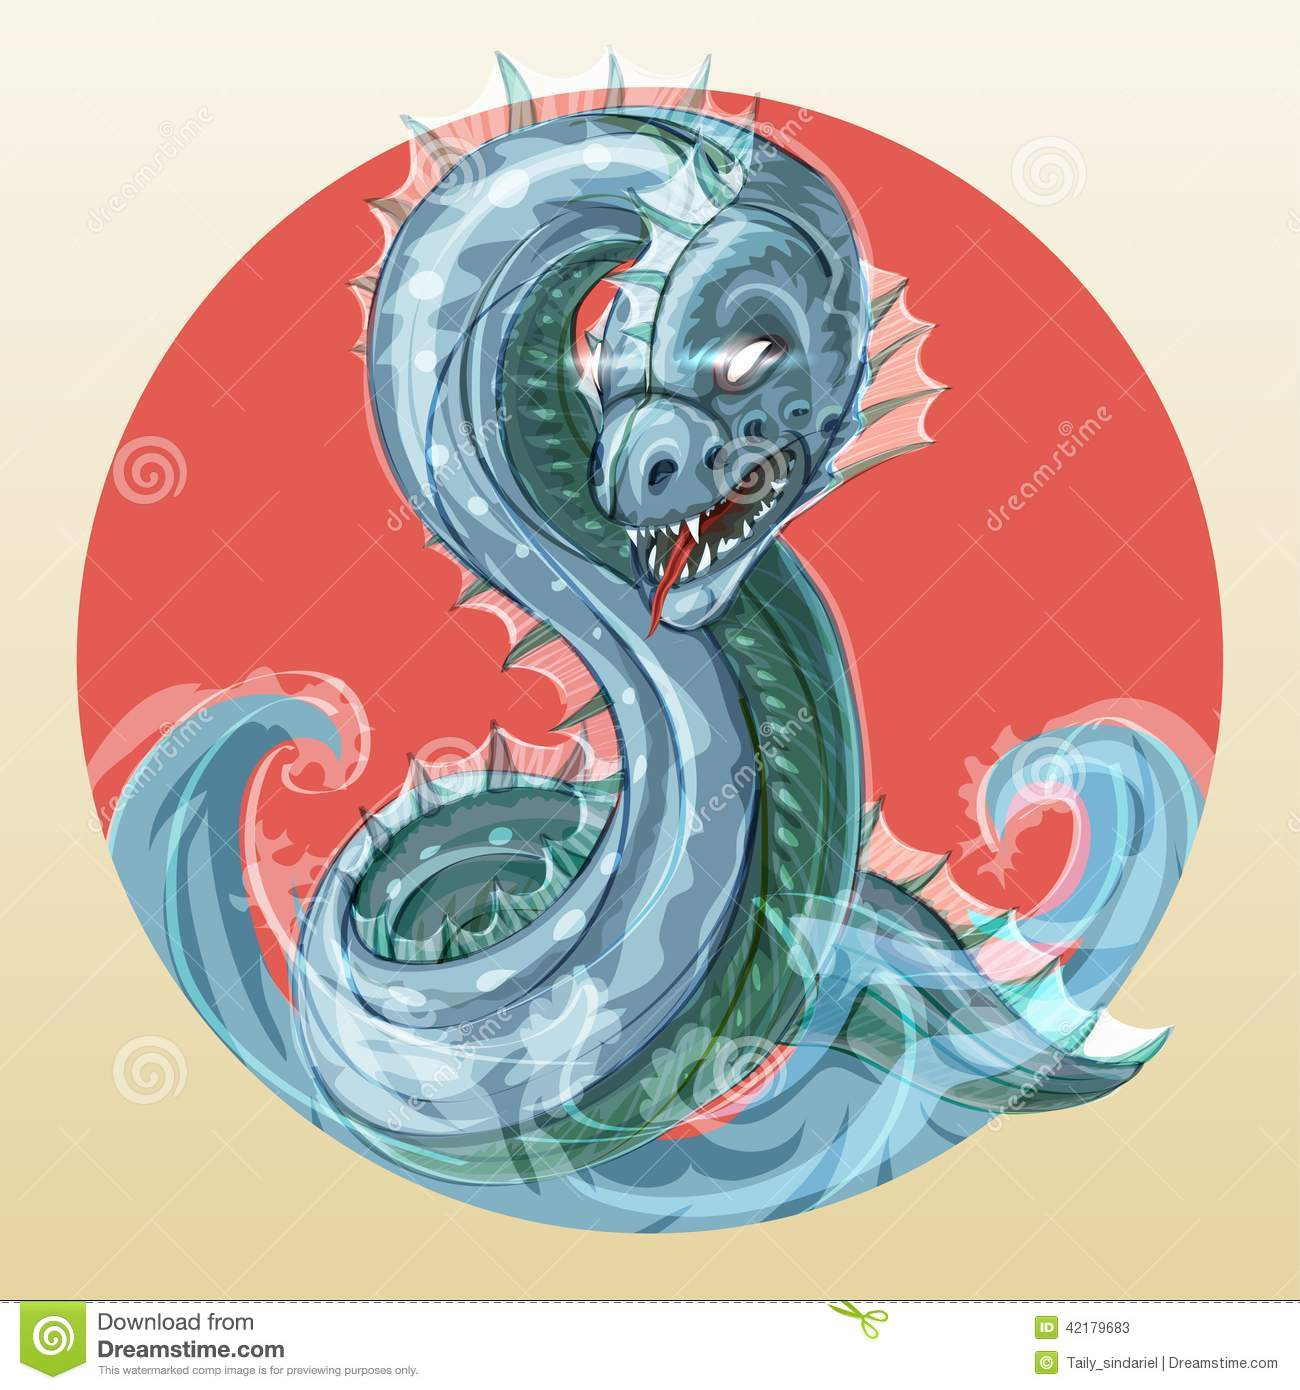 sea serpent or water dragon stock vector illustration of